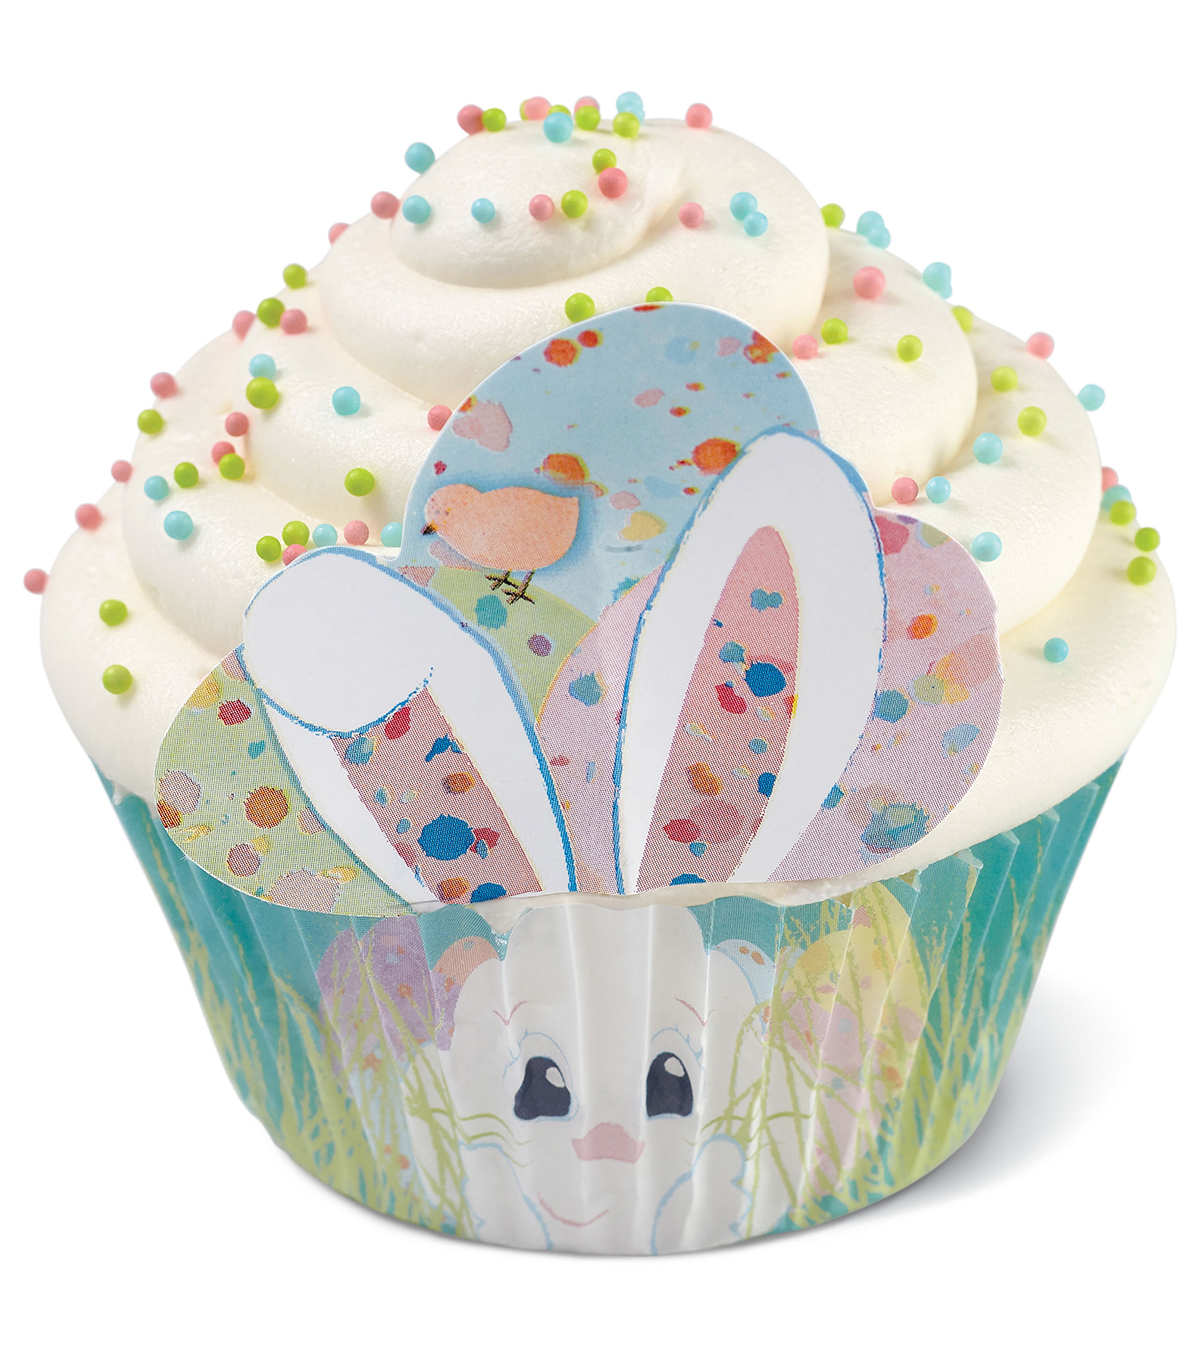 Wilton® Cupcake Decorating Kit Makes 24-Sweet Splatter